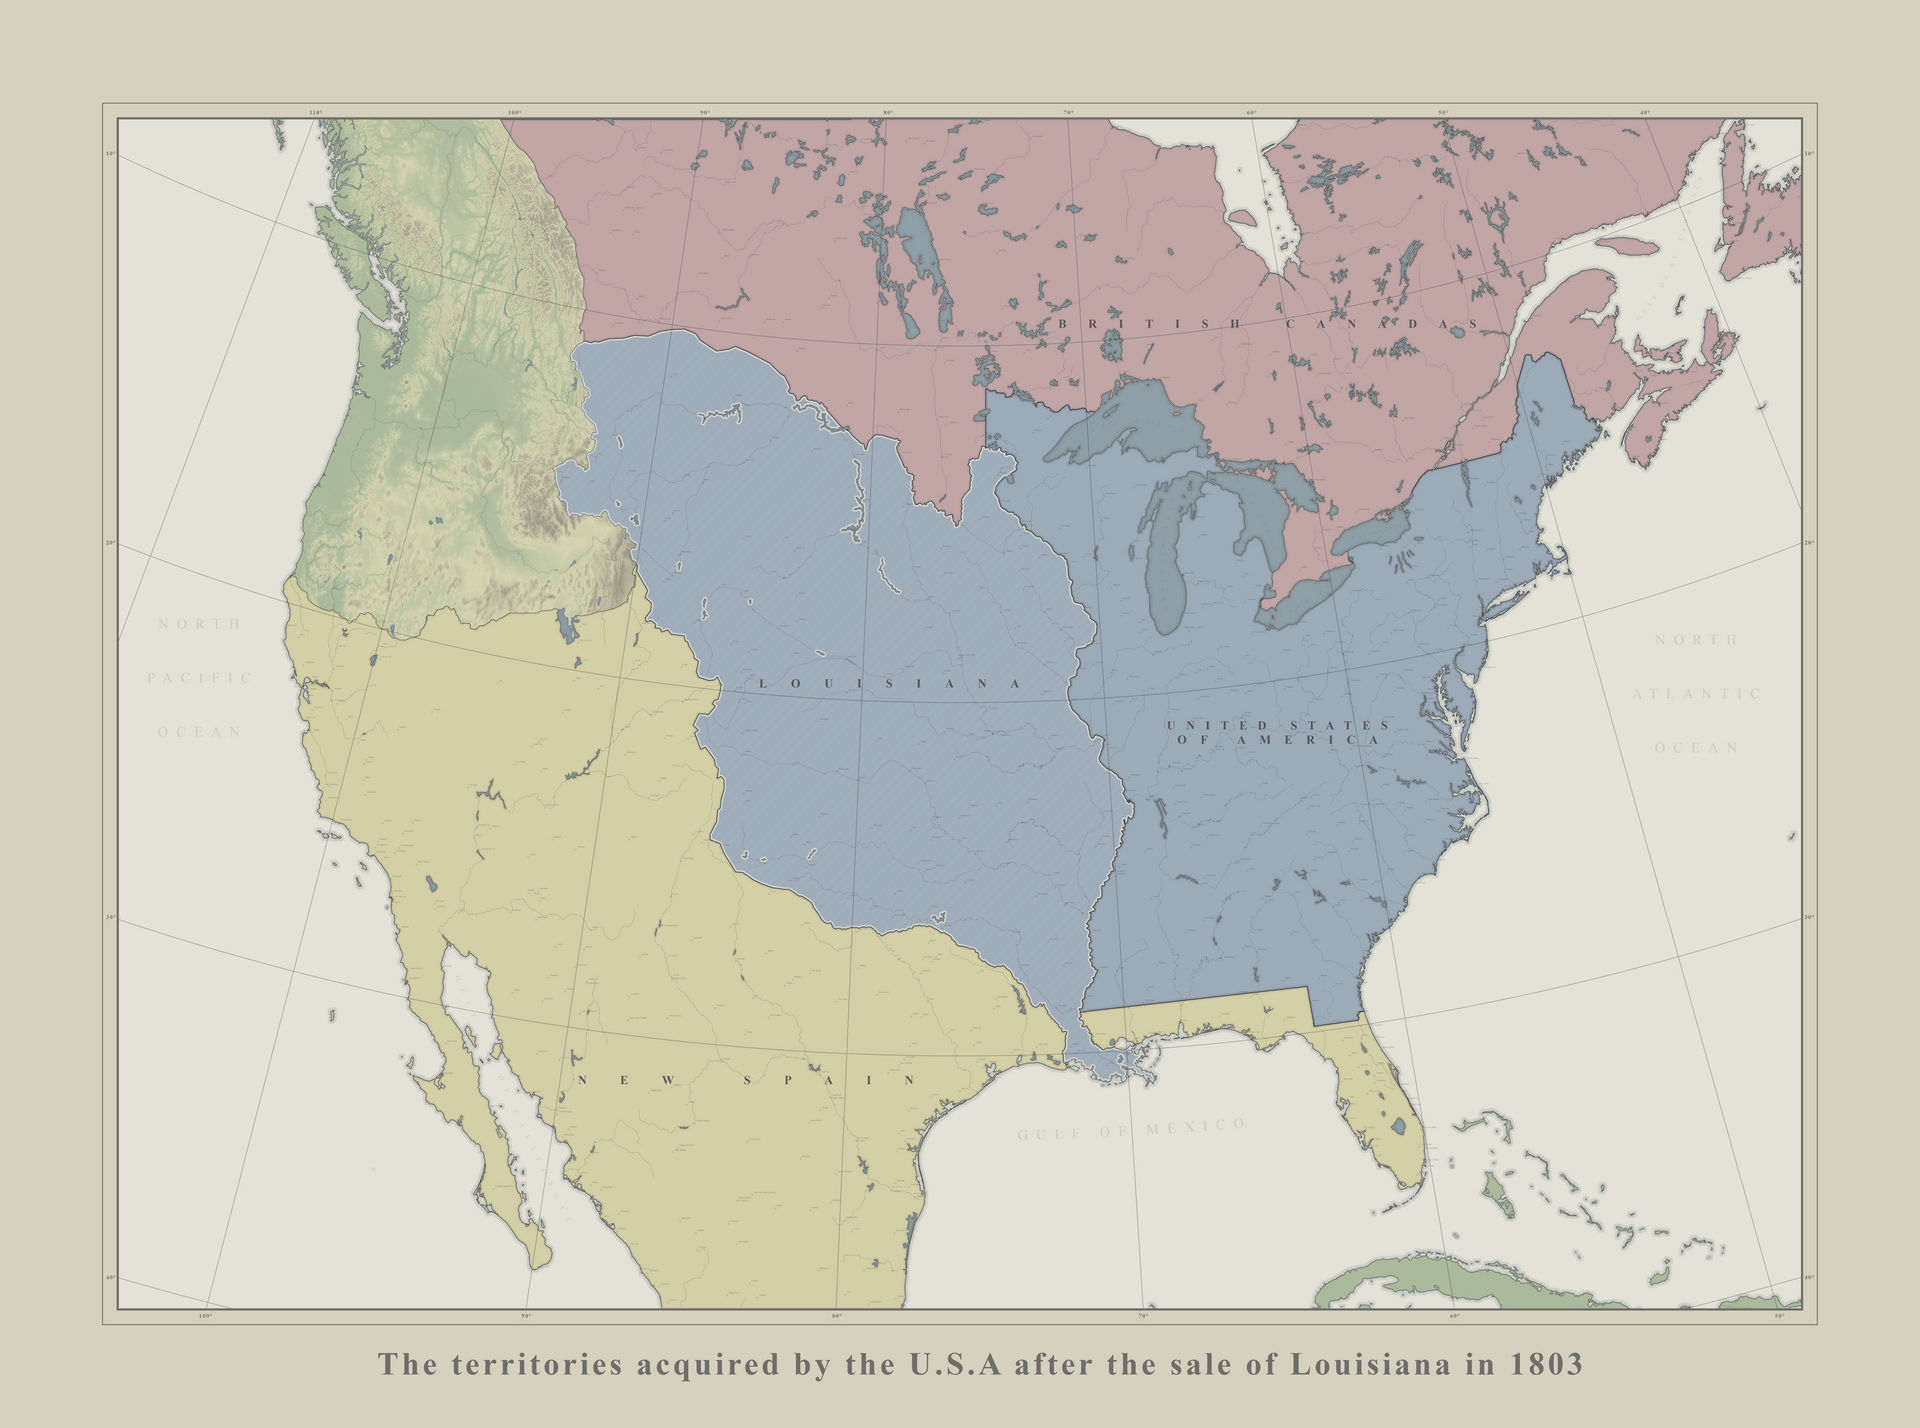 Territories sold to the US in 1803 by France by Cattette on ...